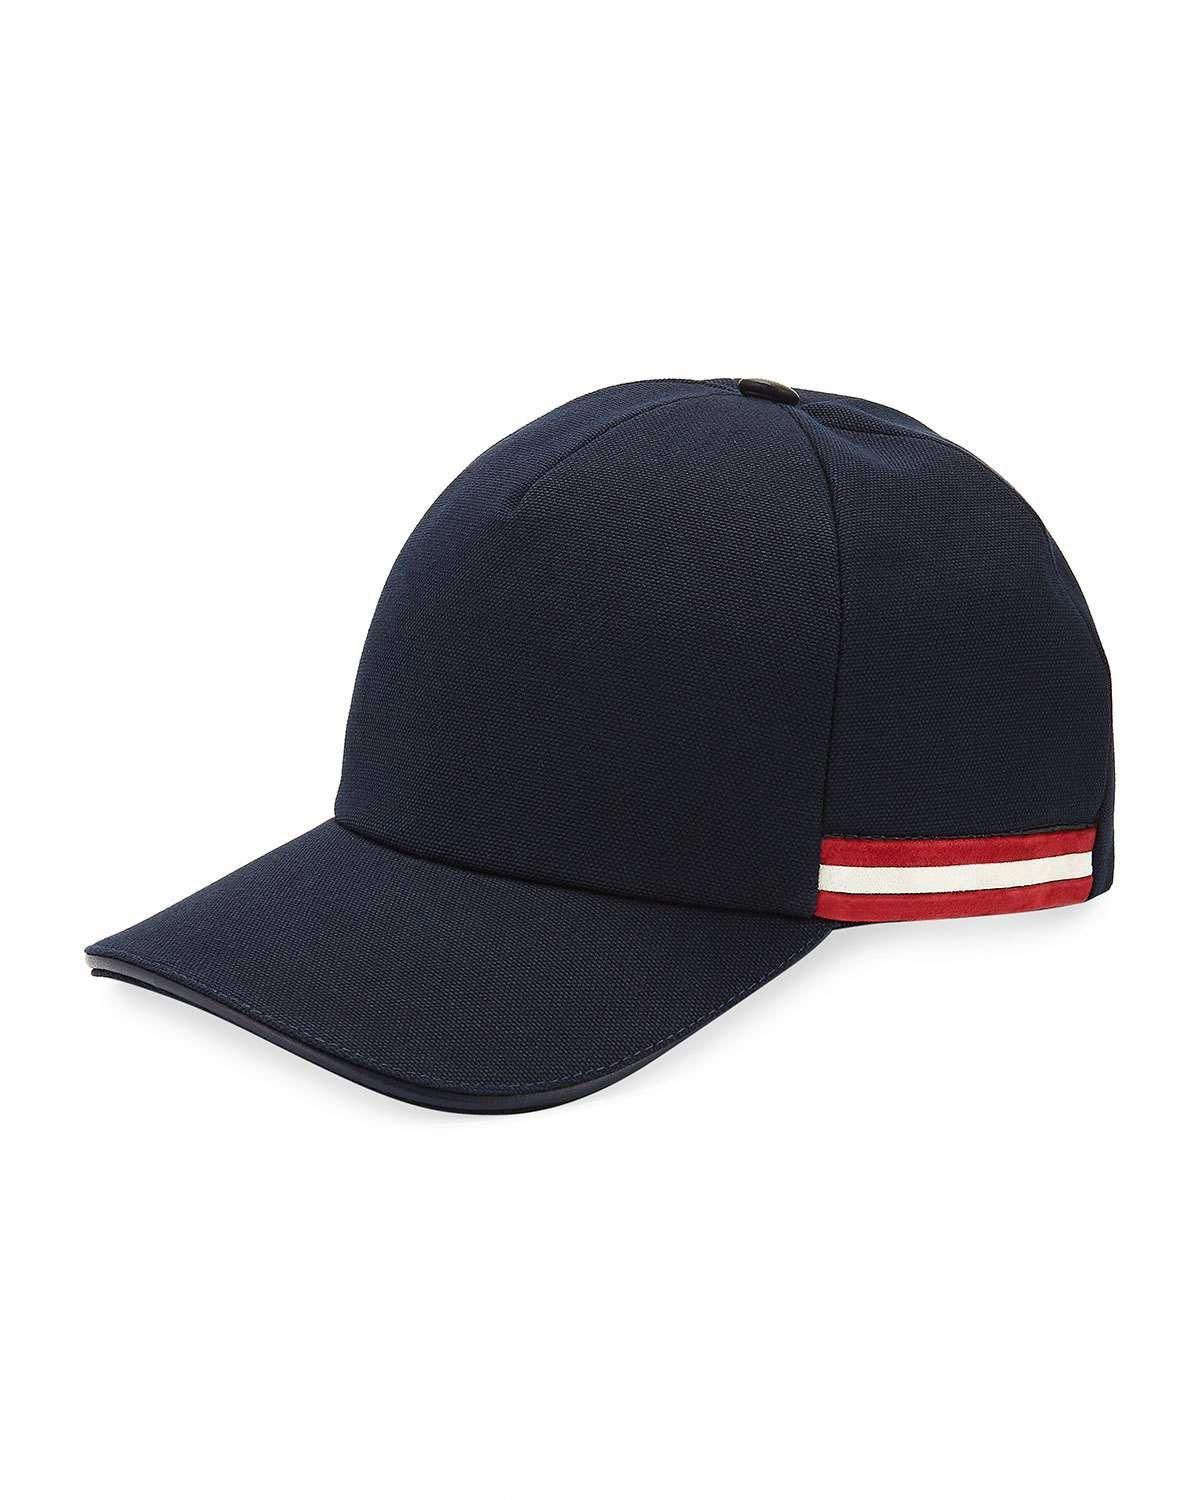 e5a158423b4 Bally Baseball Hat with Trainspotting Striped Trim  baseballhats ...